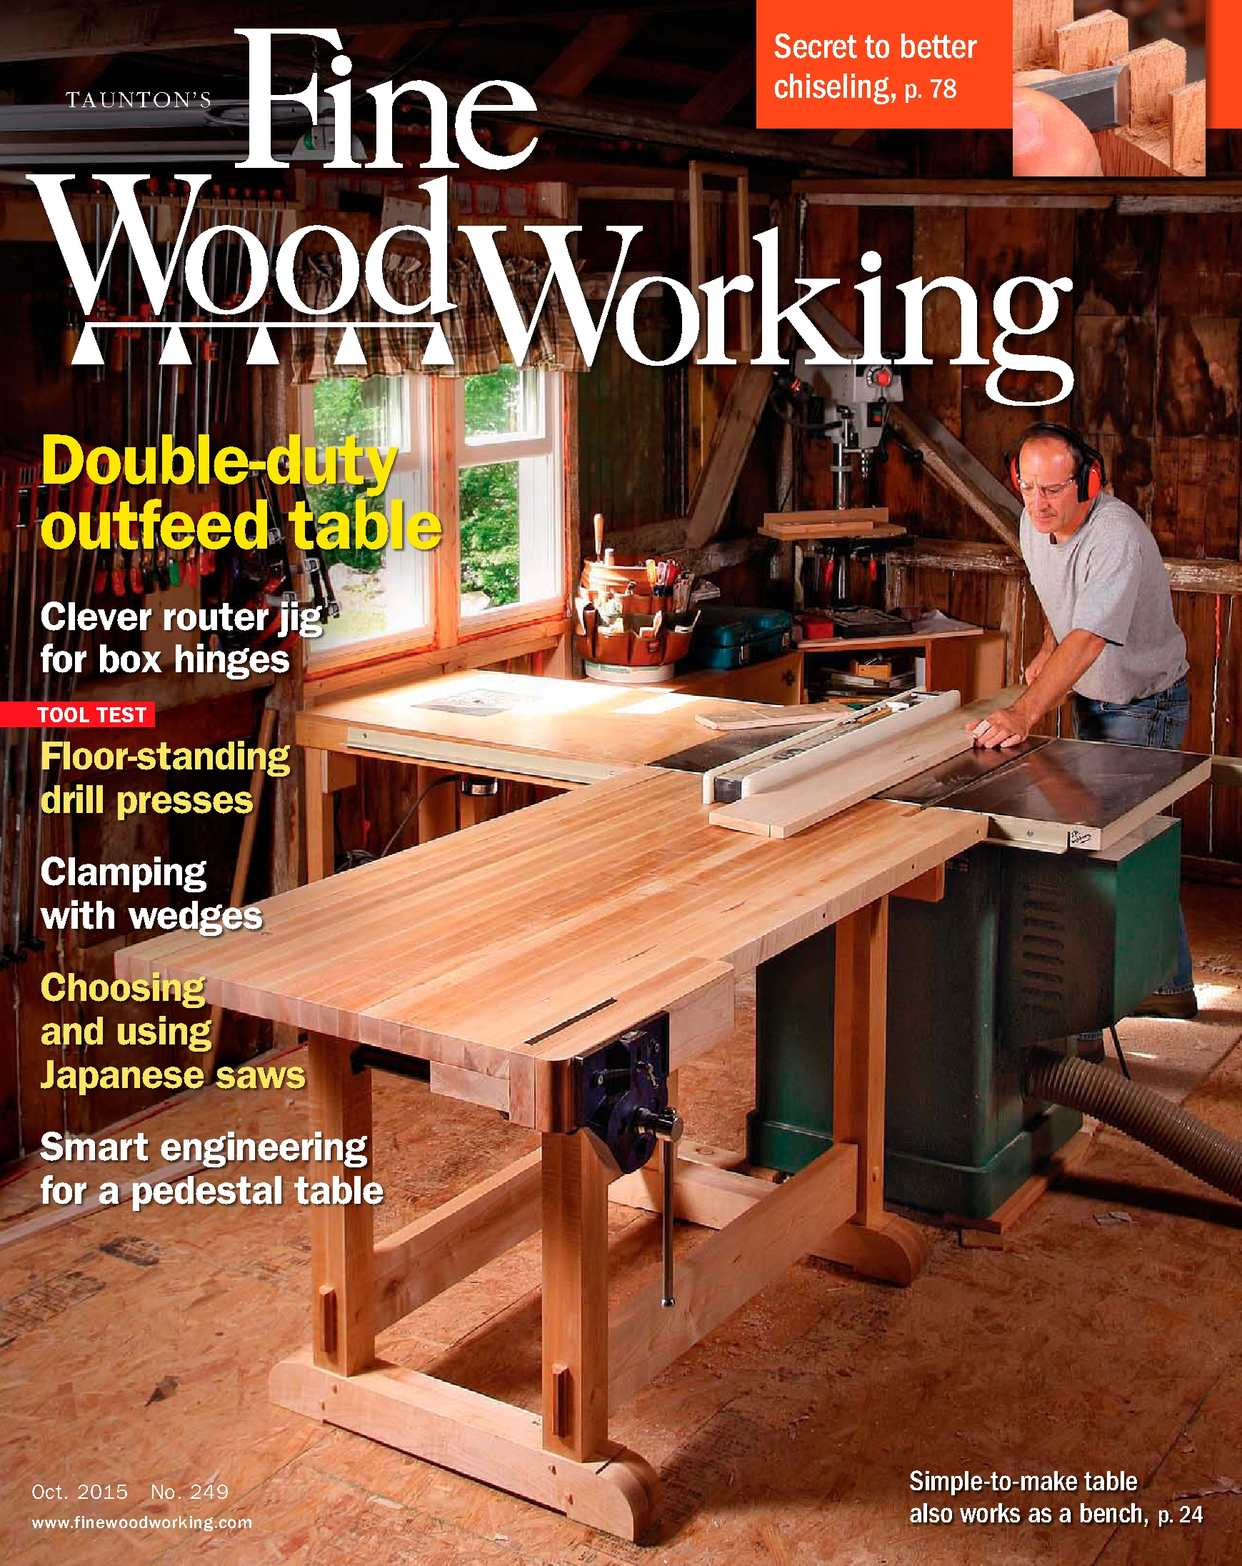 calaméo - fine woodworking #249 preview issue